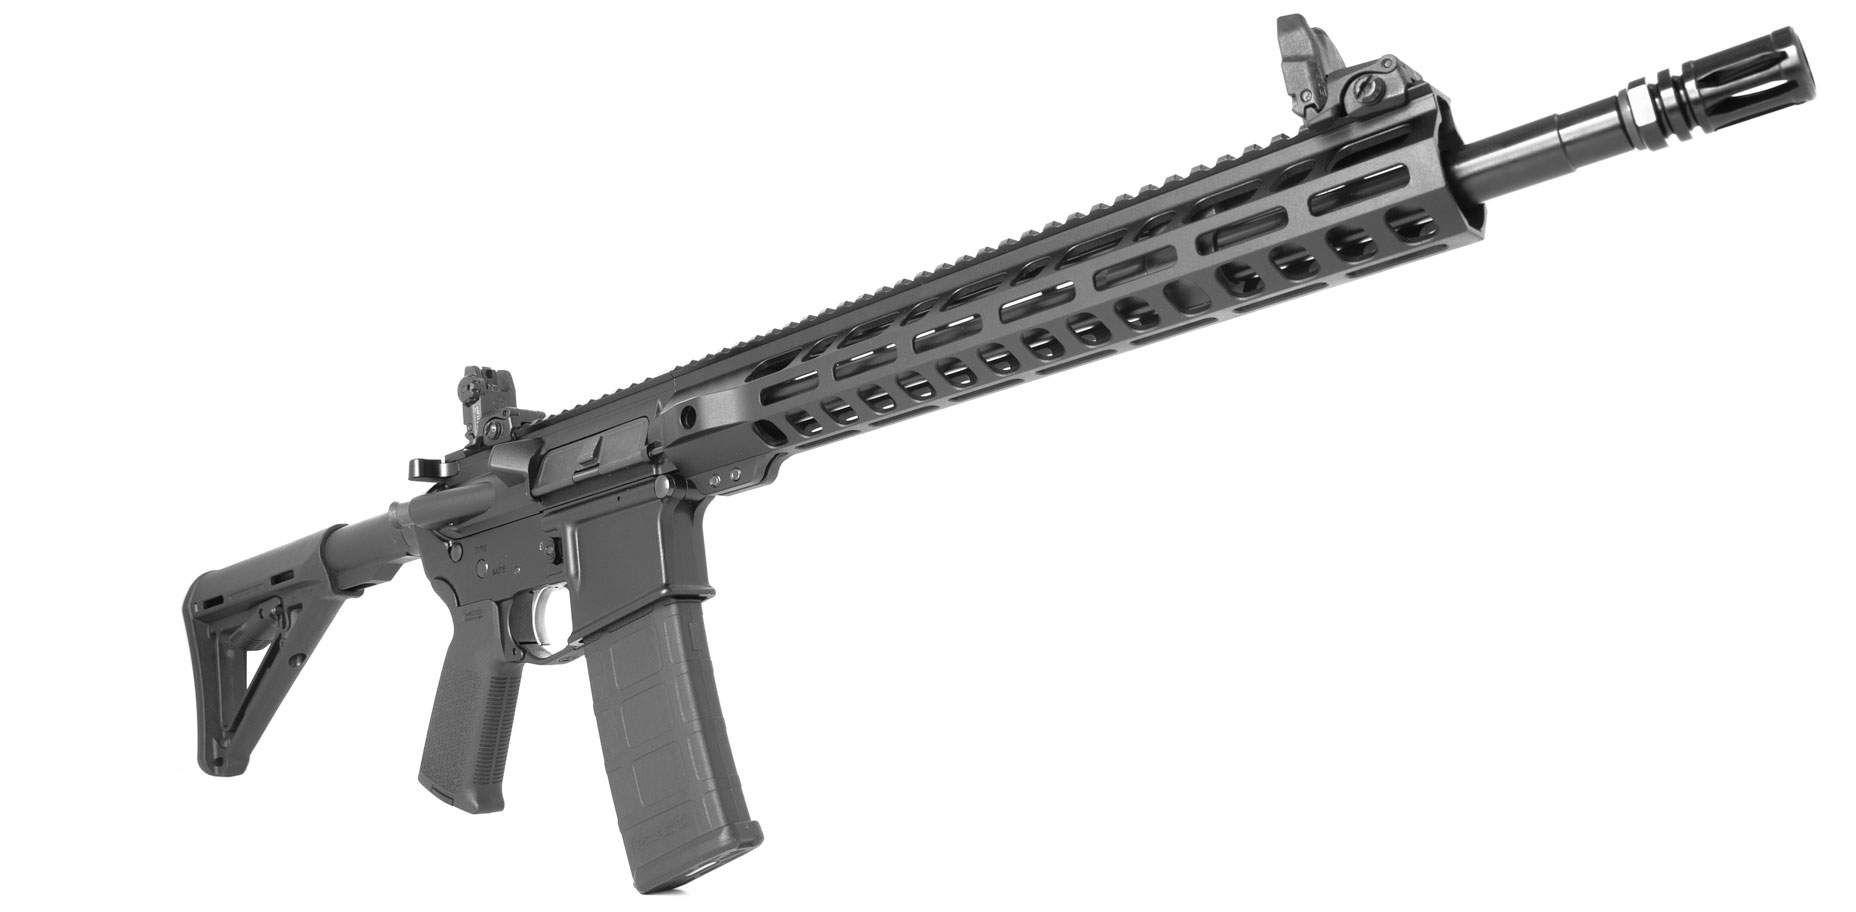 PALMETTO STATE ARMORY ROLLS OUT THEIR NEW GEN2 PA-15 AR-15!!!